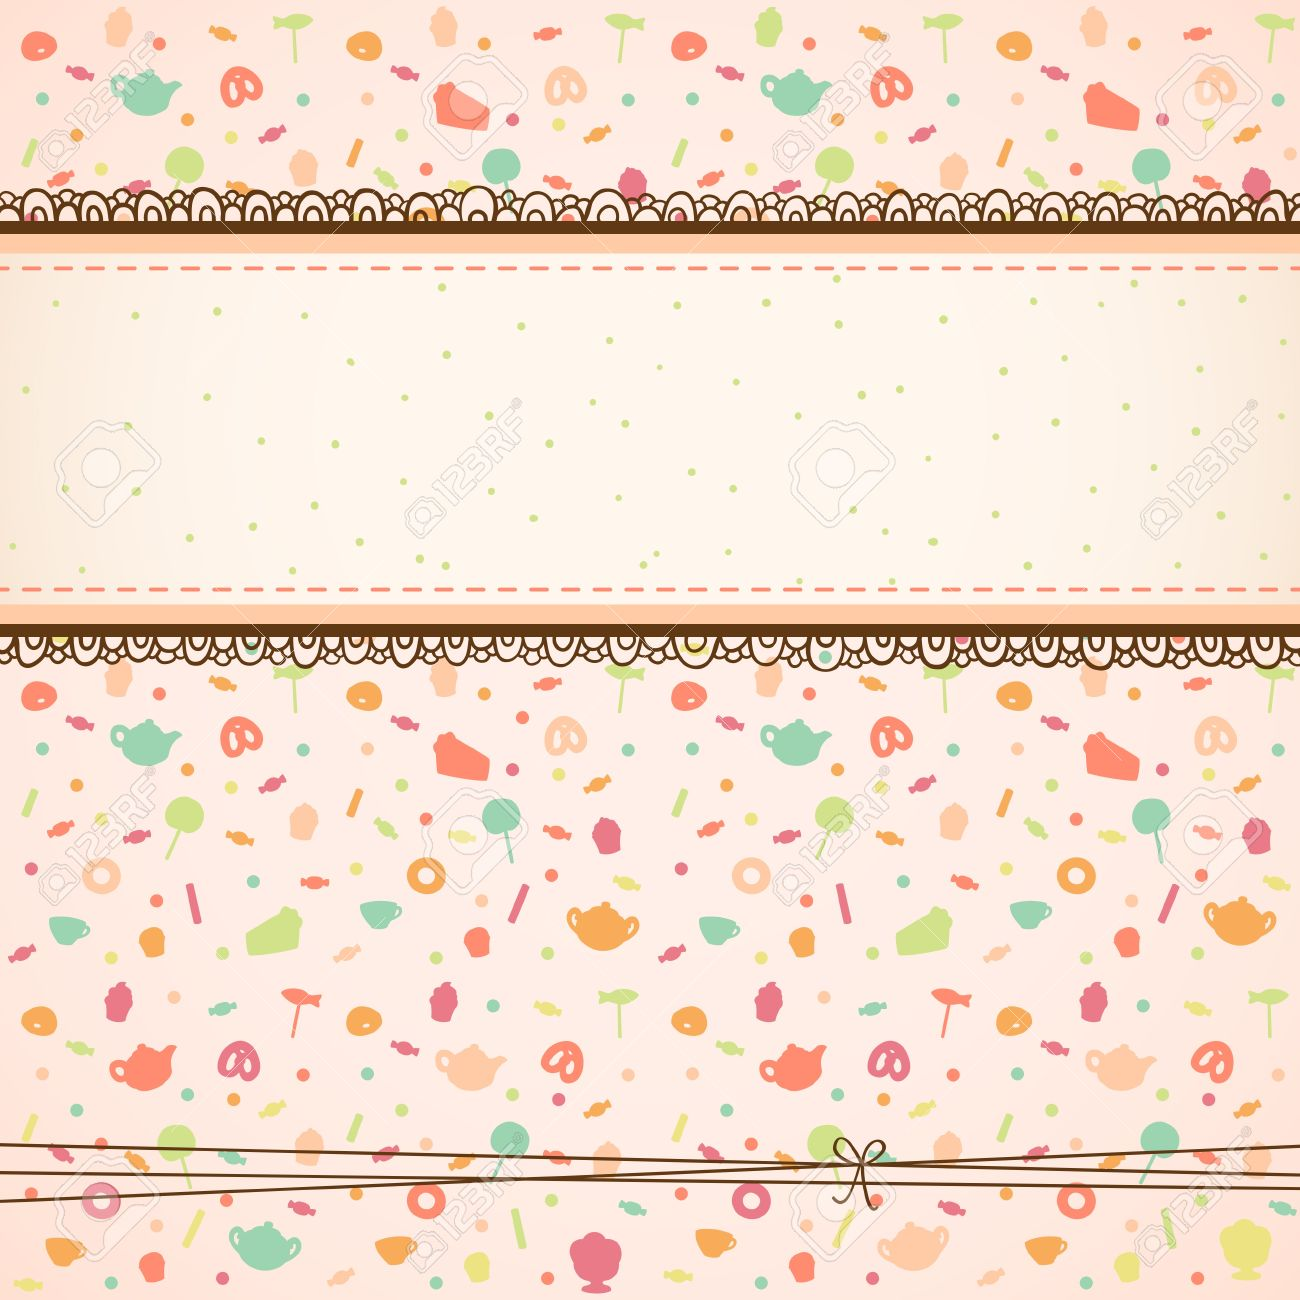 Tea party background royalty free stock photo image 28839215 - Jpg 1300x1300 Tea Party Background